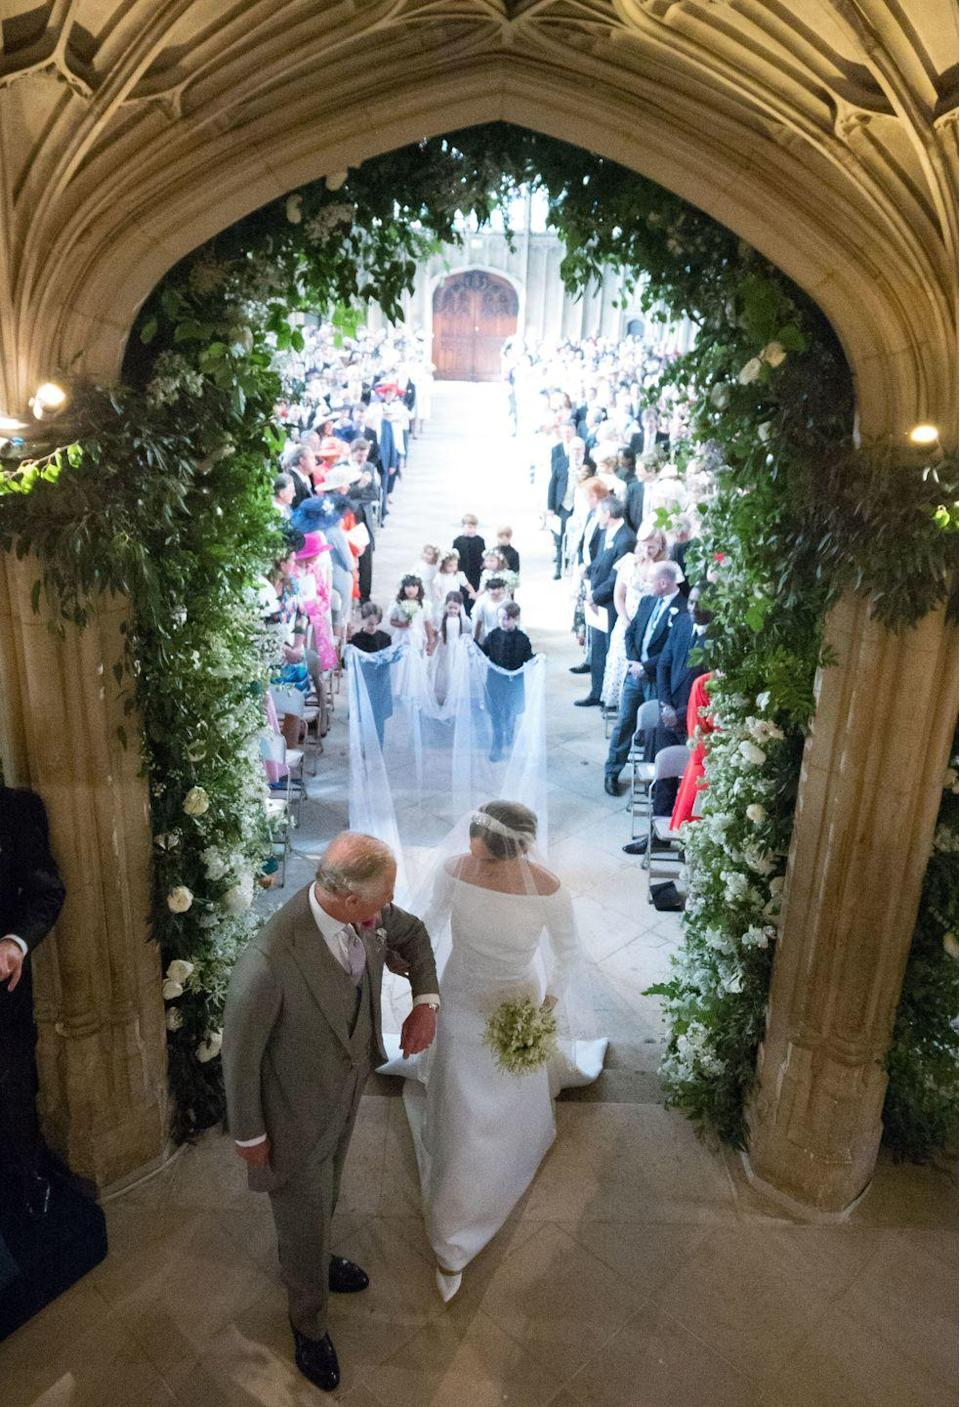 """<p>After her dad <a href=""""https://www.goodhousekeeping.com/life/a19991628/meghan-markle-dad-thomas/"""" rel=""""nofollow noopener"""" target=""""_blank"""" data-ylk=""""slk:Thomas Markle"""" class=""""link rapid-noclick-resp"""">Thomas Markle</a> announced he could no longer attend the wedding due to his health, the future King of England stepped up to the plate. Meghan walked through the first section of the church—the nave—by herself, then the Prince of Wales escorted her up to the altar.</p>"""